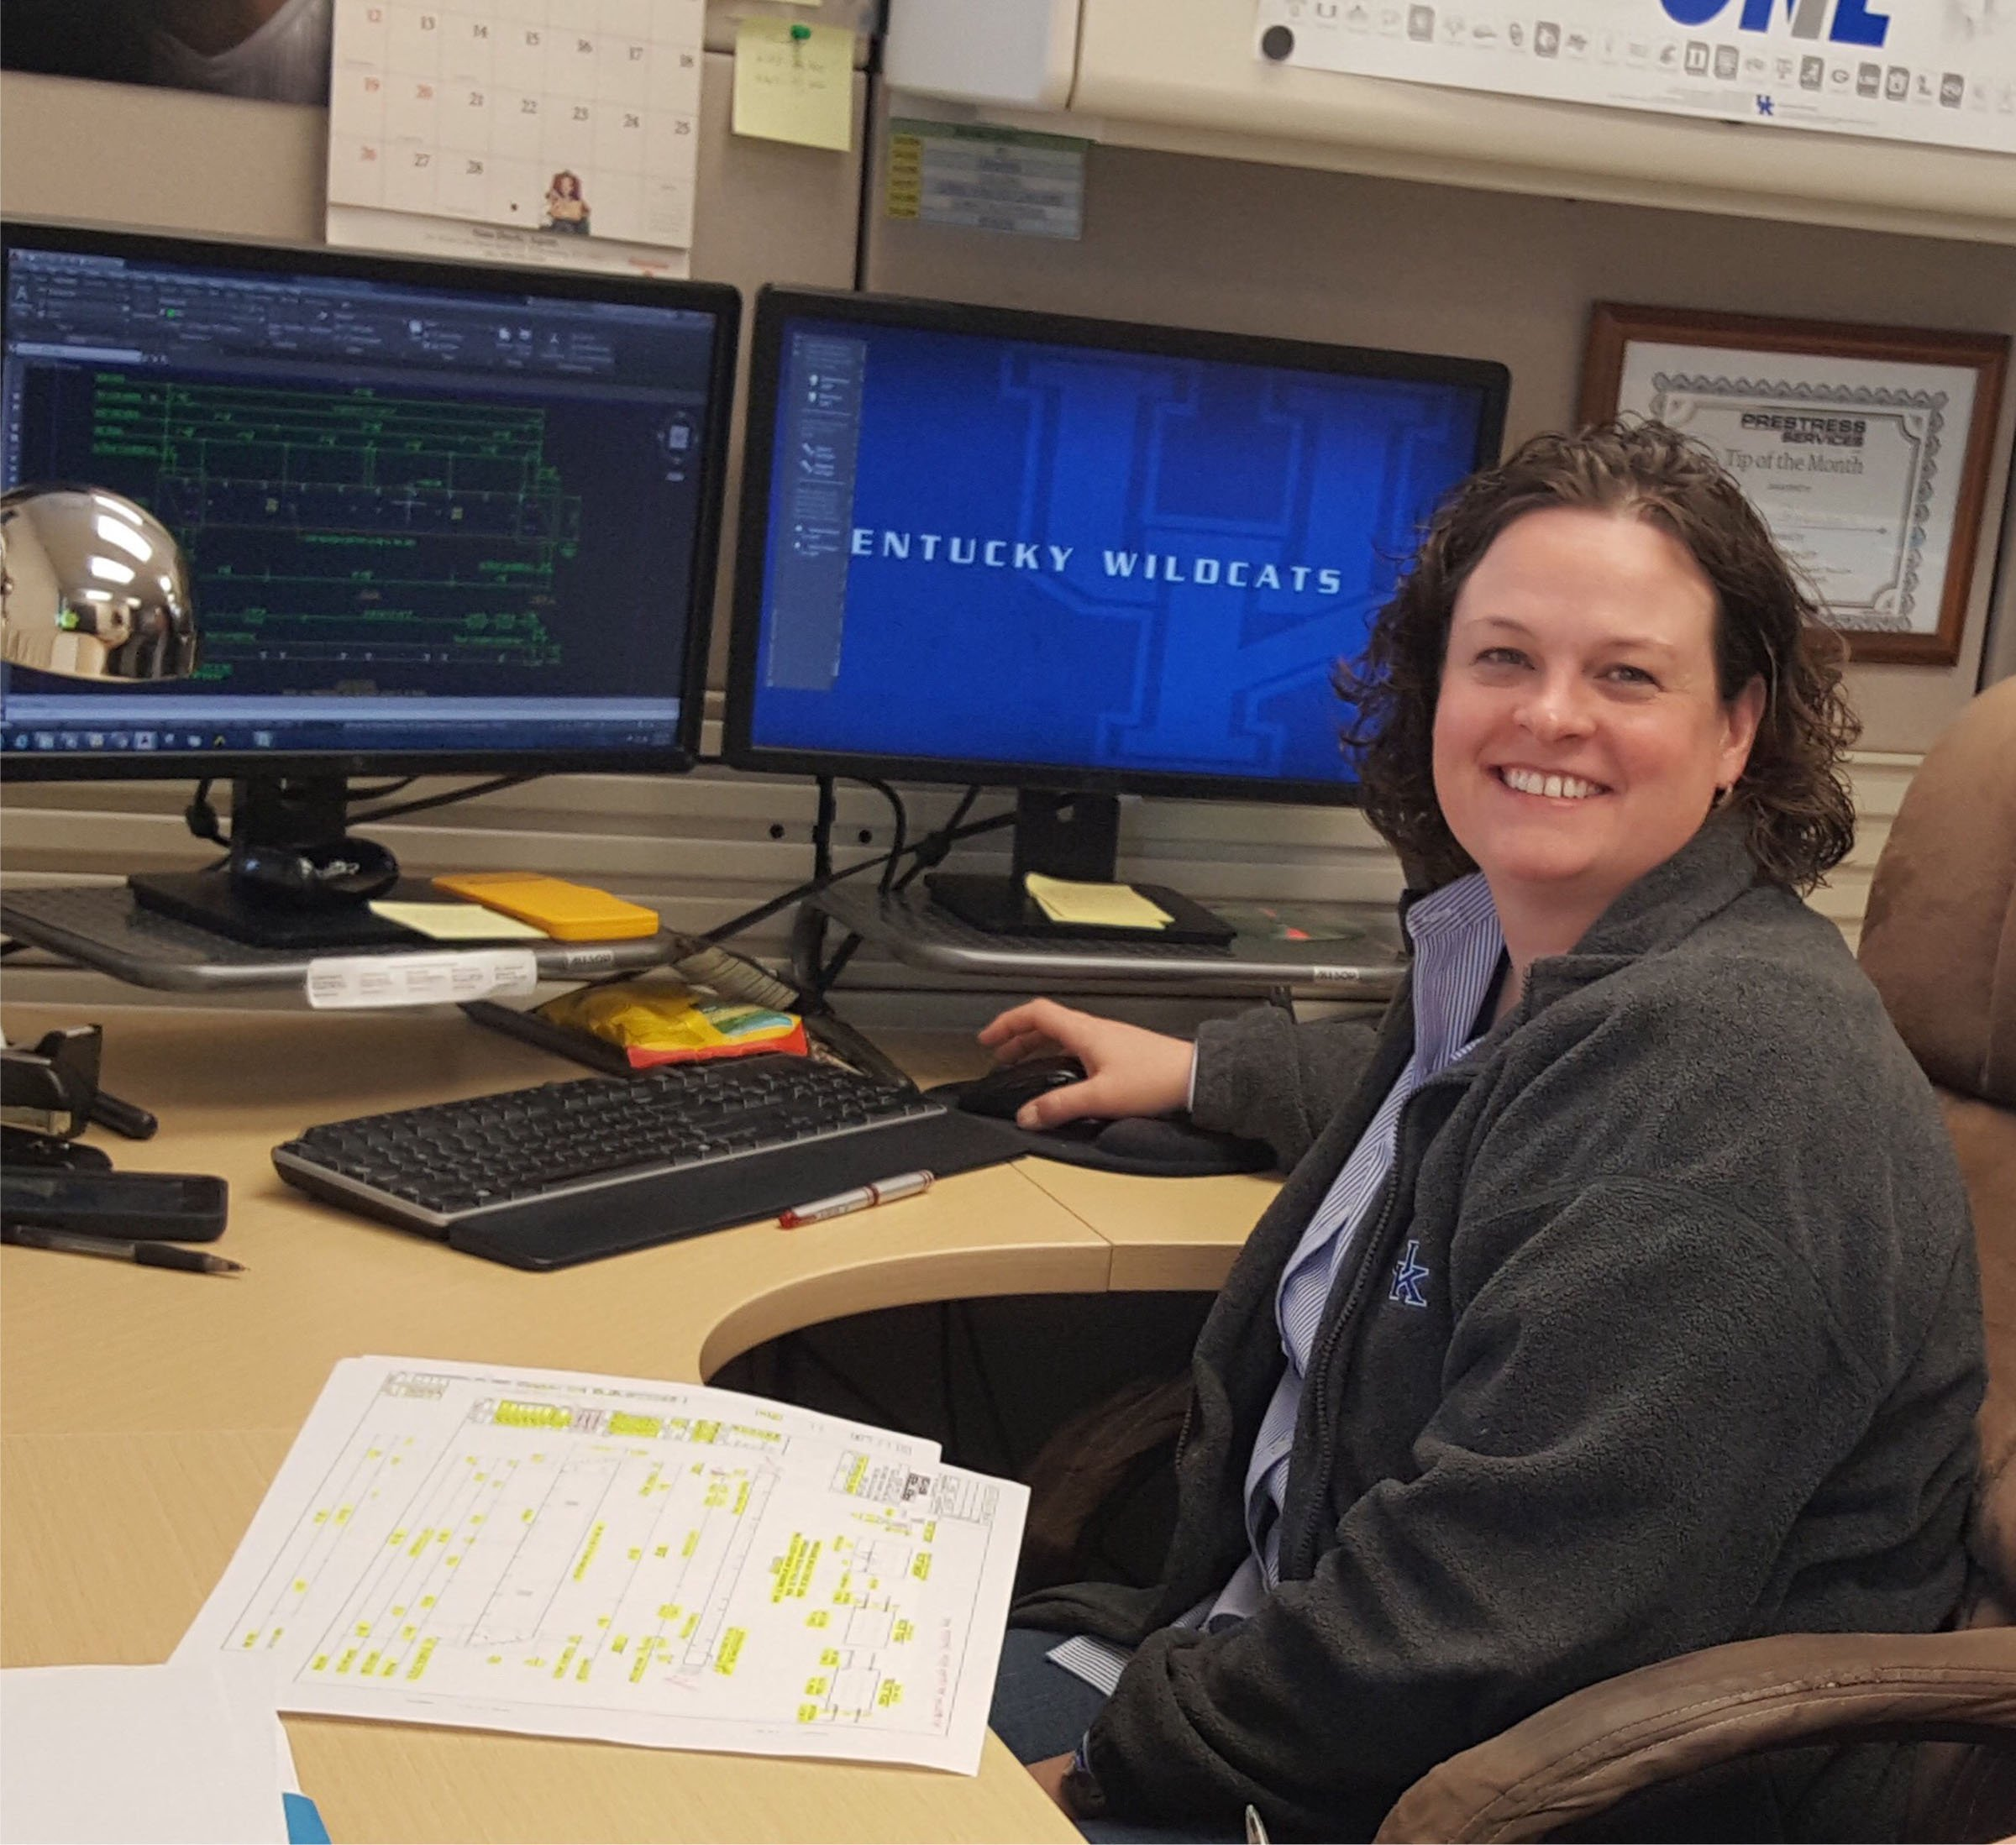 Camille Robinson, a 2014 graduate of Big Sandy Community and Technical College, currently works as a draftsman for Prestress Services Industries in Lexington, Ky.